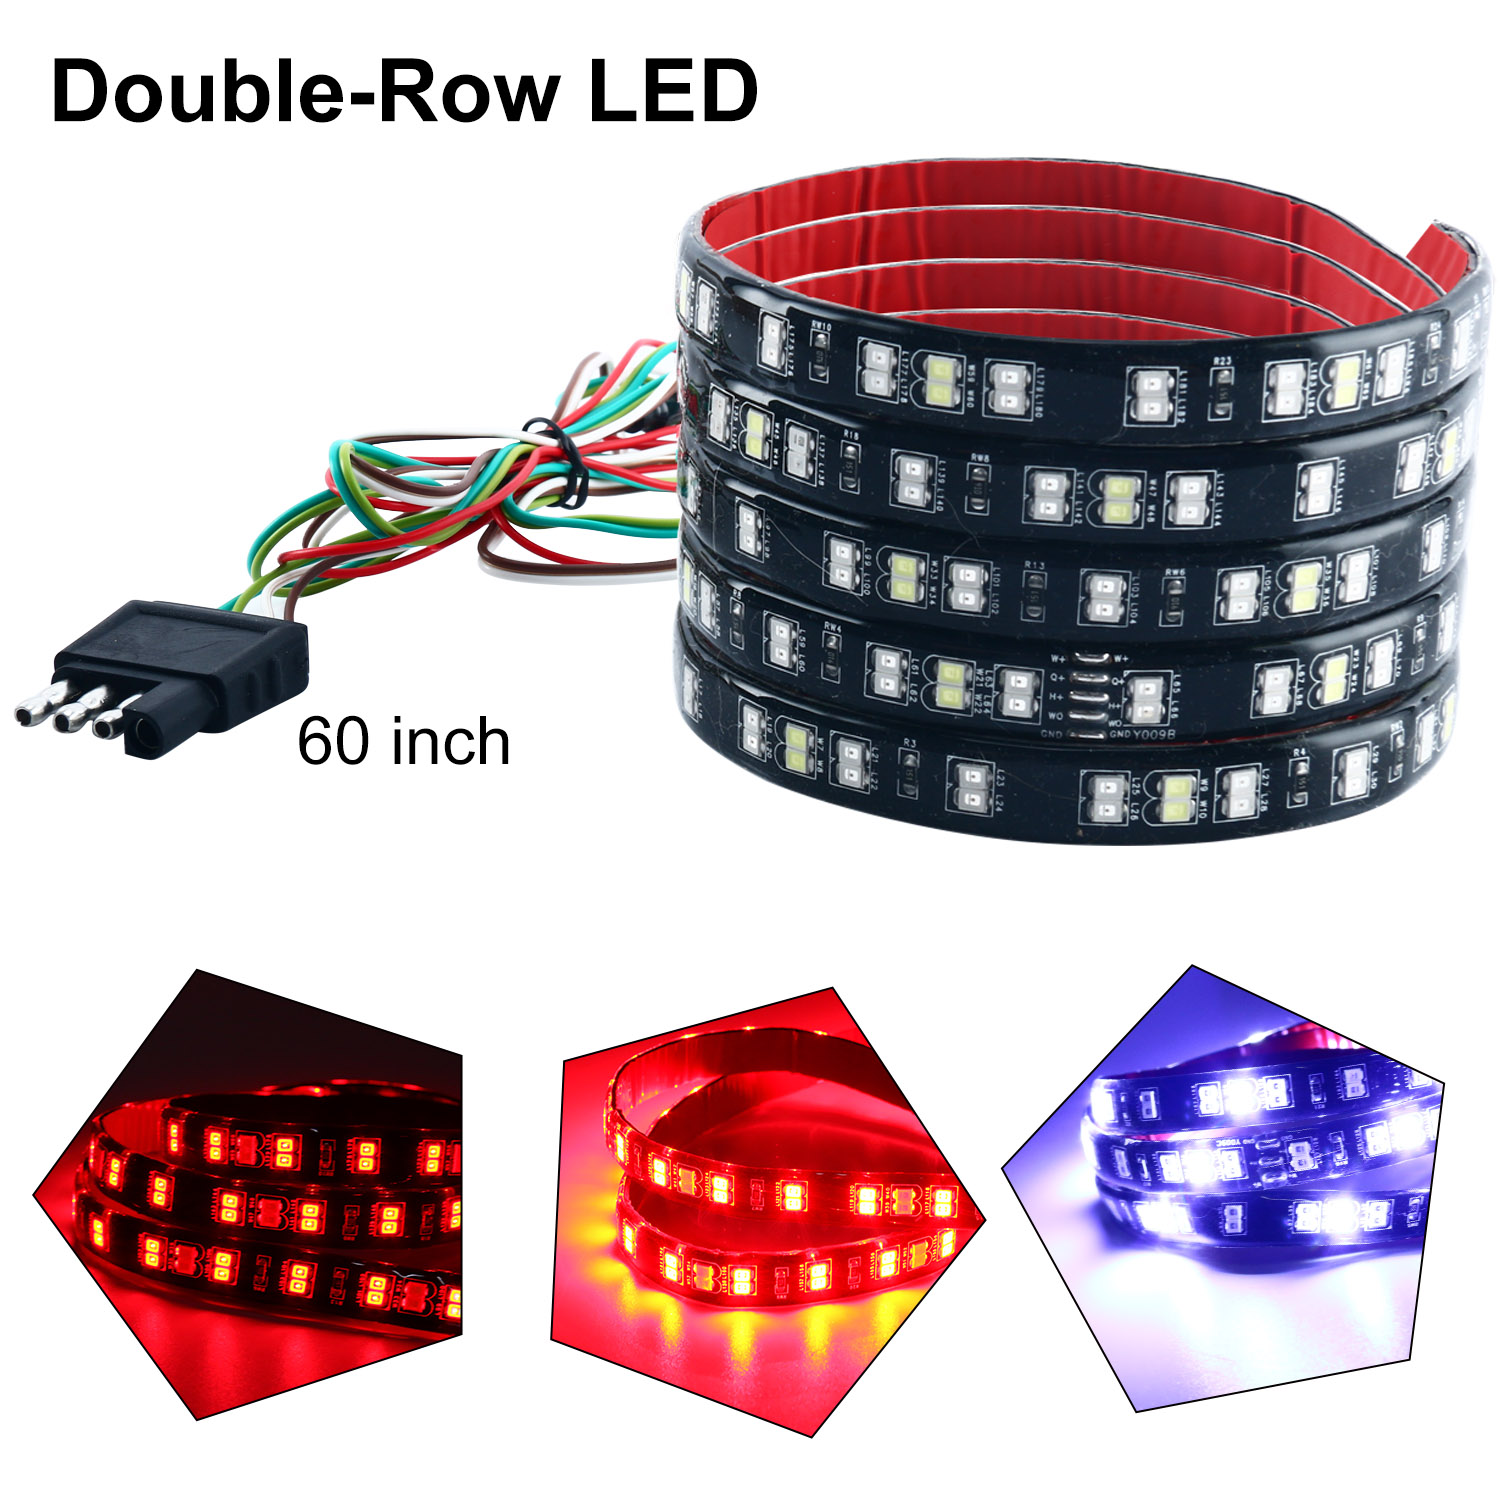 package includes: 1 x 150cm tailgate led strip light 4 x silicone fixed  buttons 8 x screws 1x installation manual